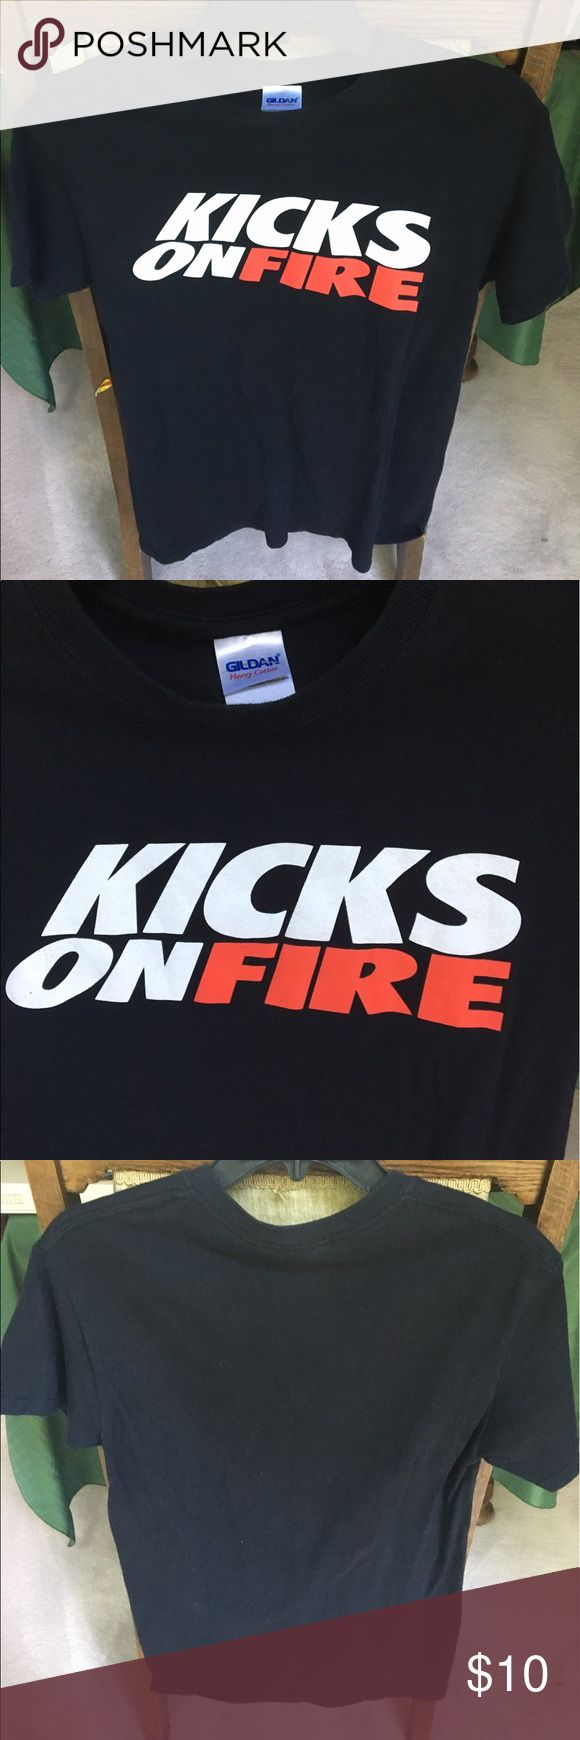 Used kicksonfire tee Used Kicks on Fire t-shirt. This is a sneaker release company that informs you about upcoming sneaker releases. kicksonfire Shirts Tees - Short Sleeve